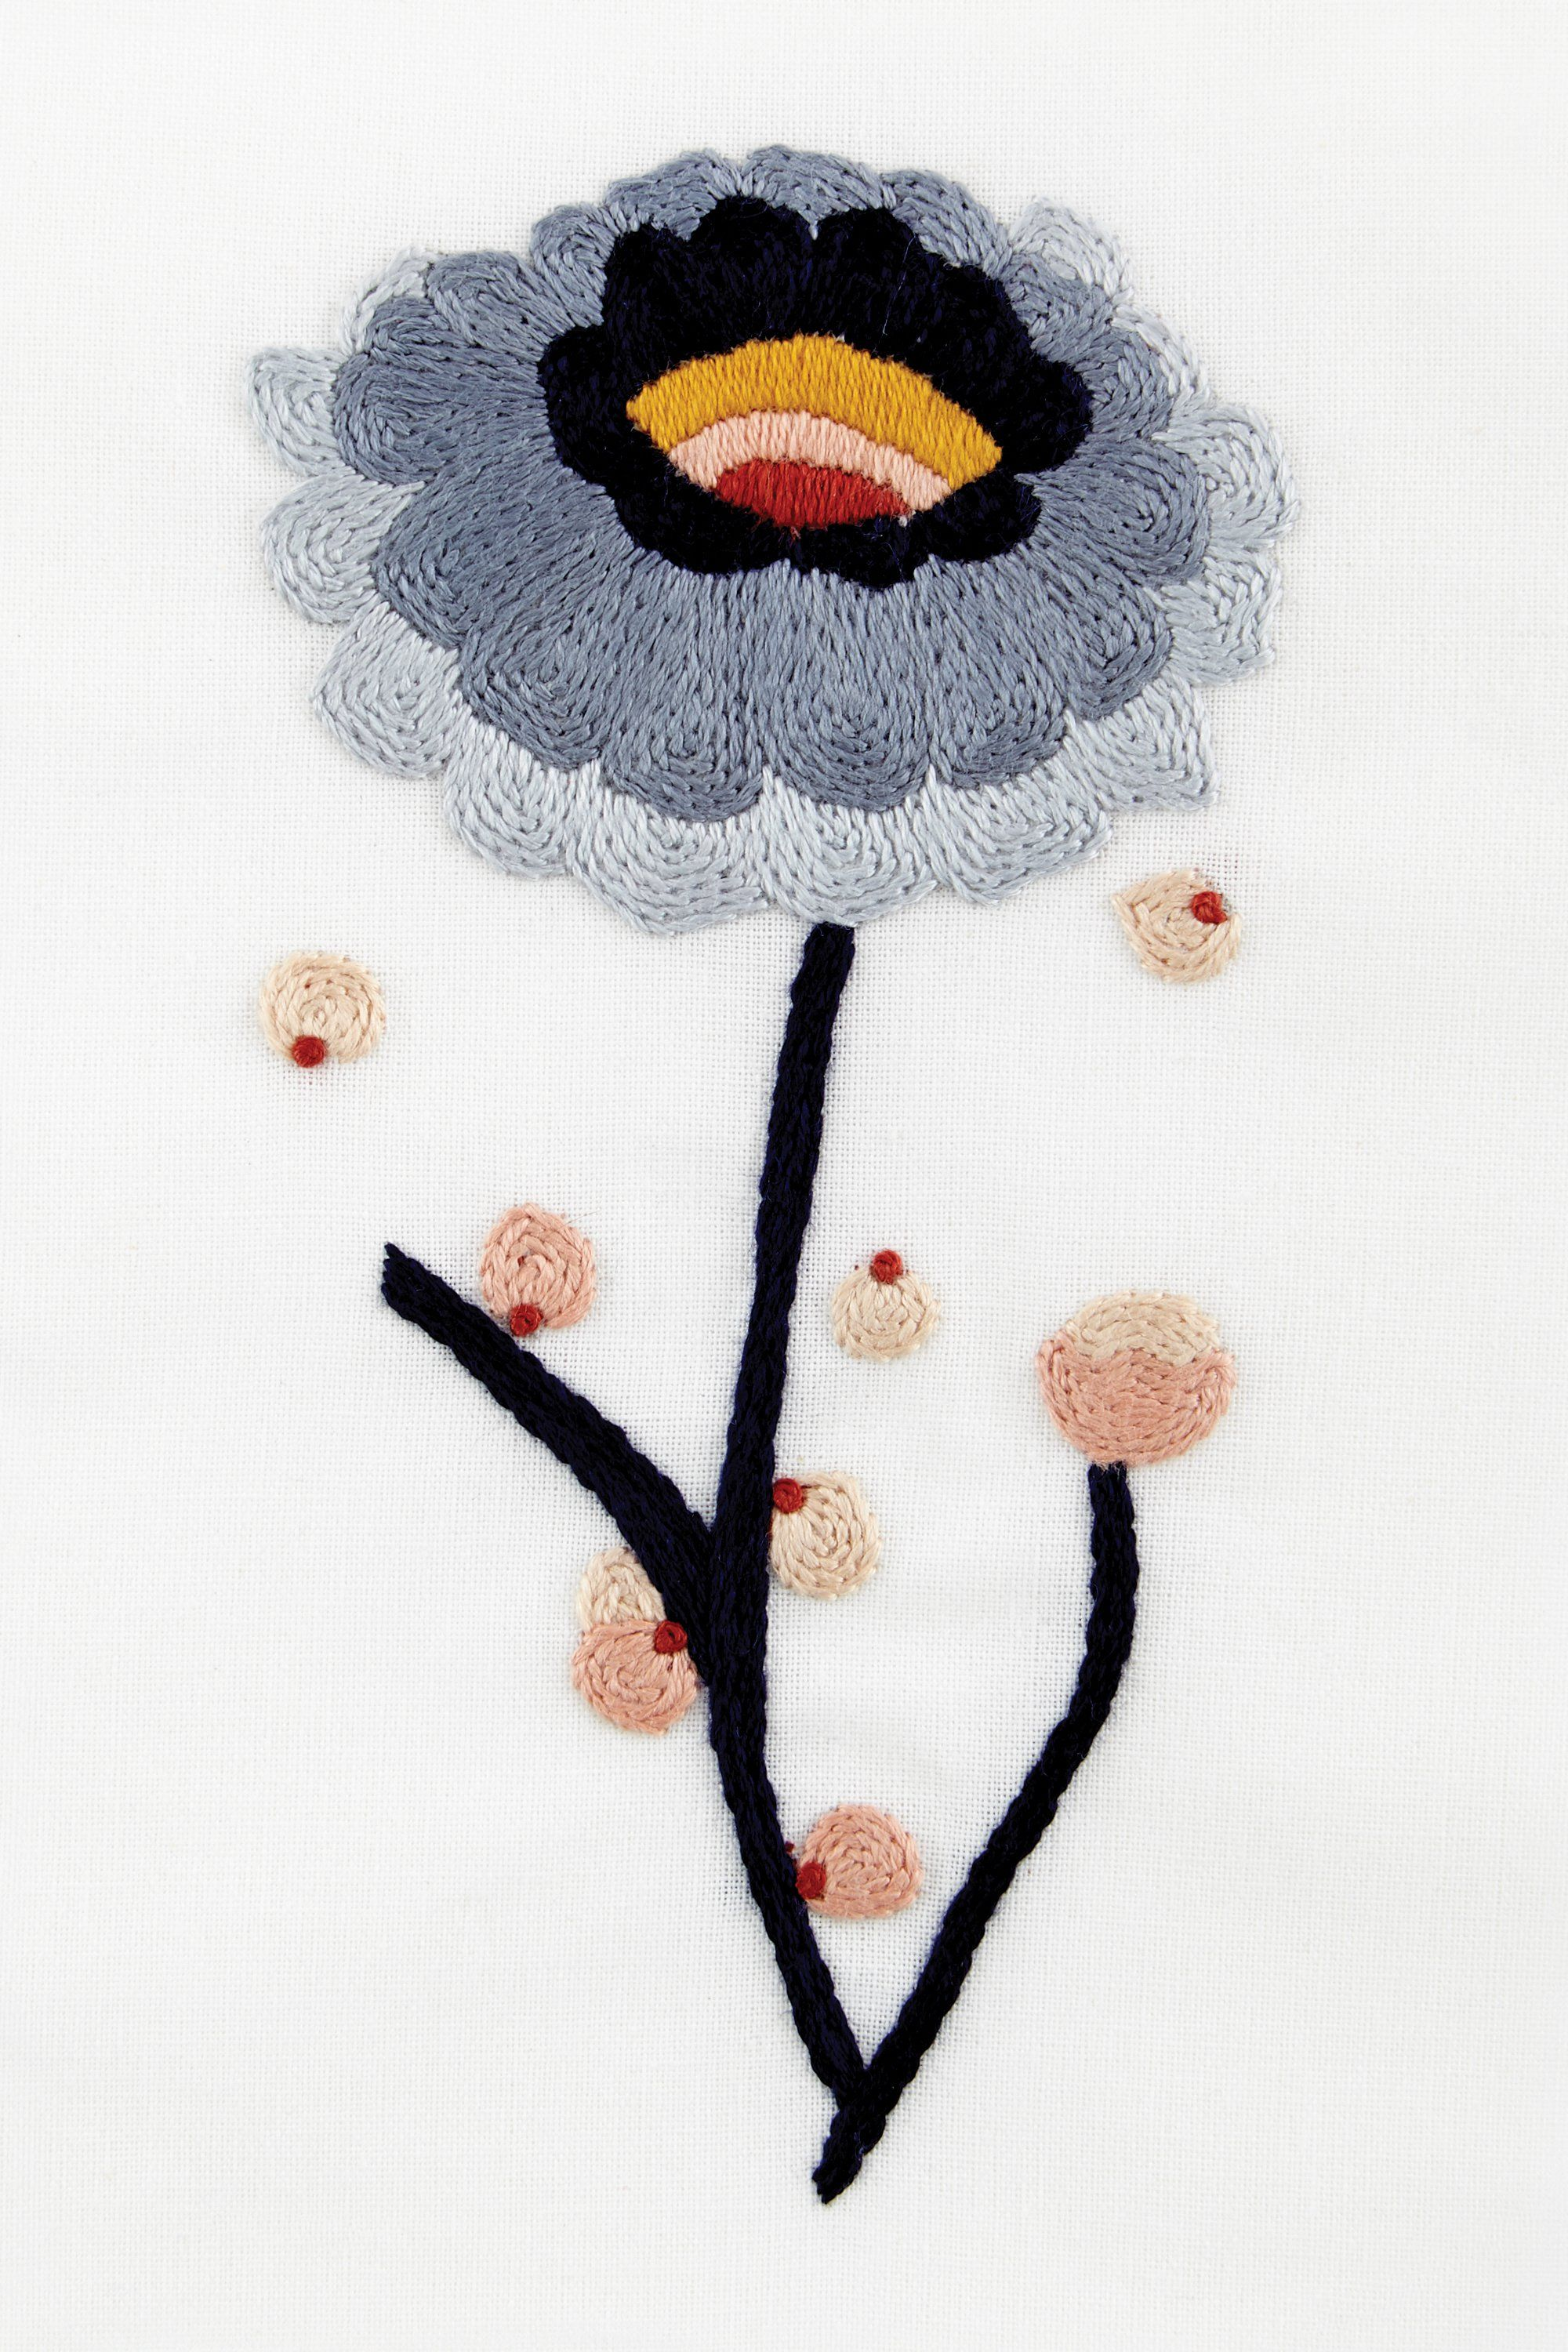 Flower power dalia - diseño | Embroidery | Pinterest | Bordado ...